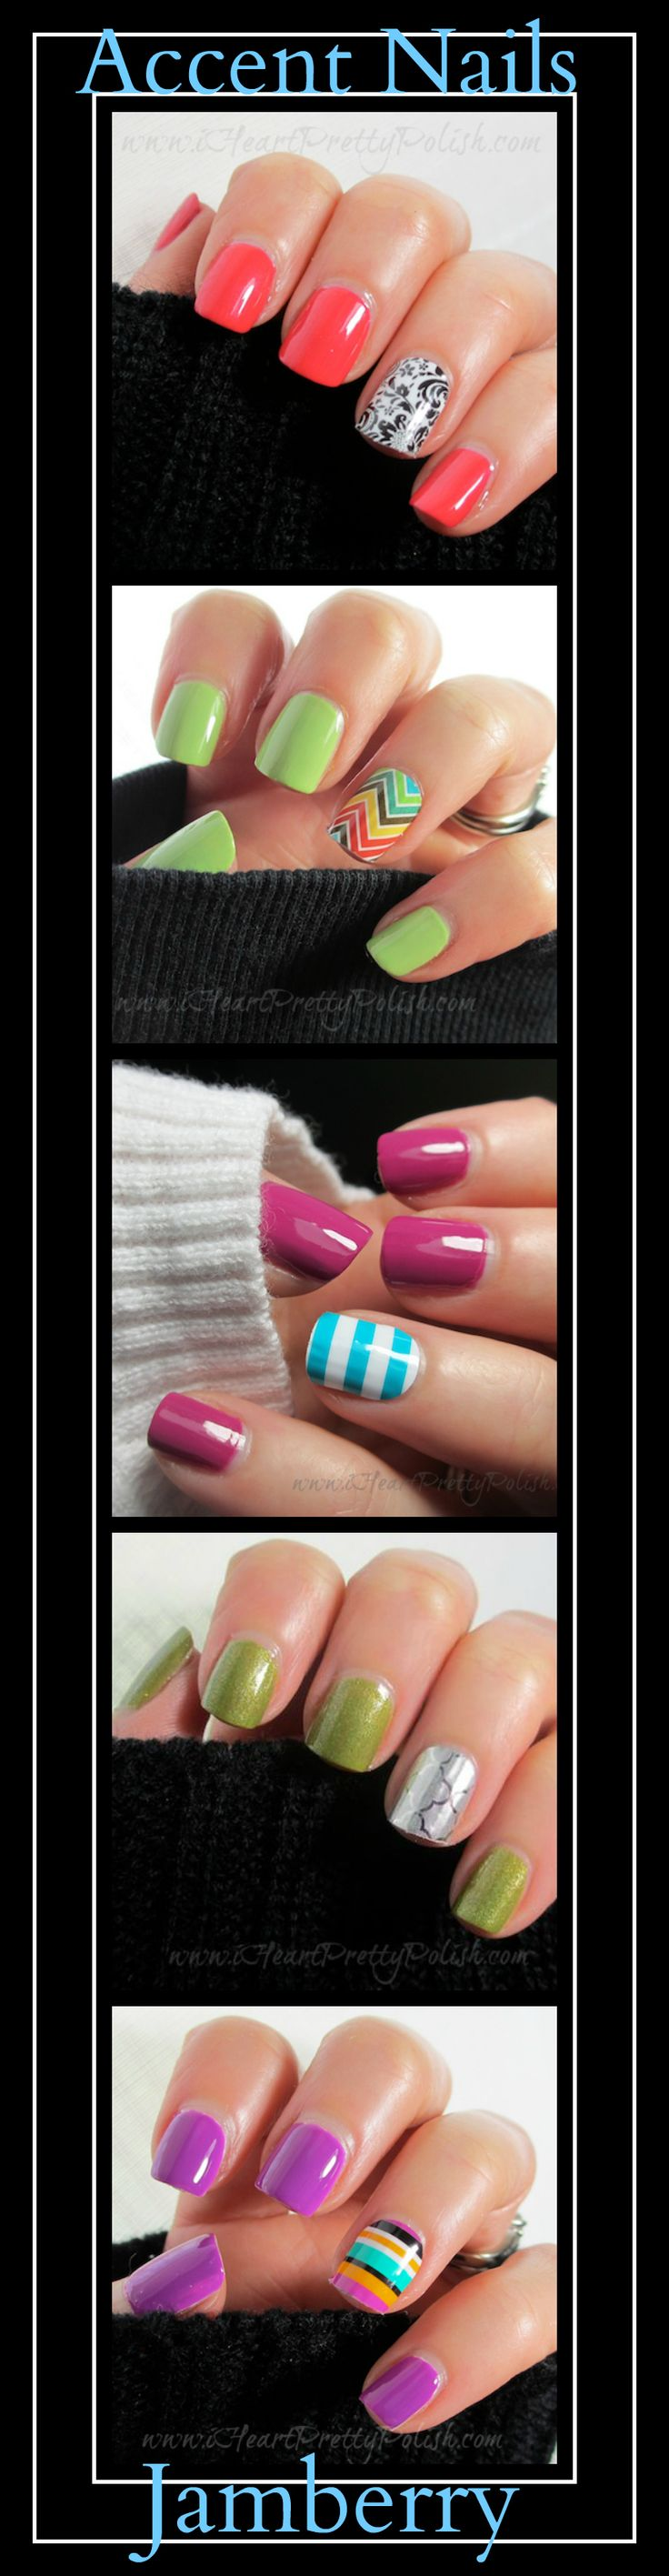 Accent nails. For the girls who can't get bling on their ring finger any other way.